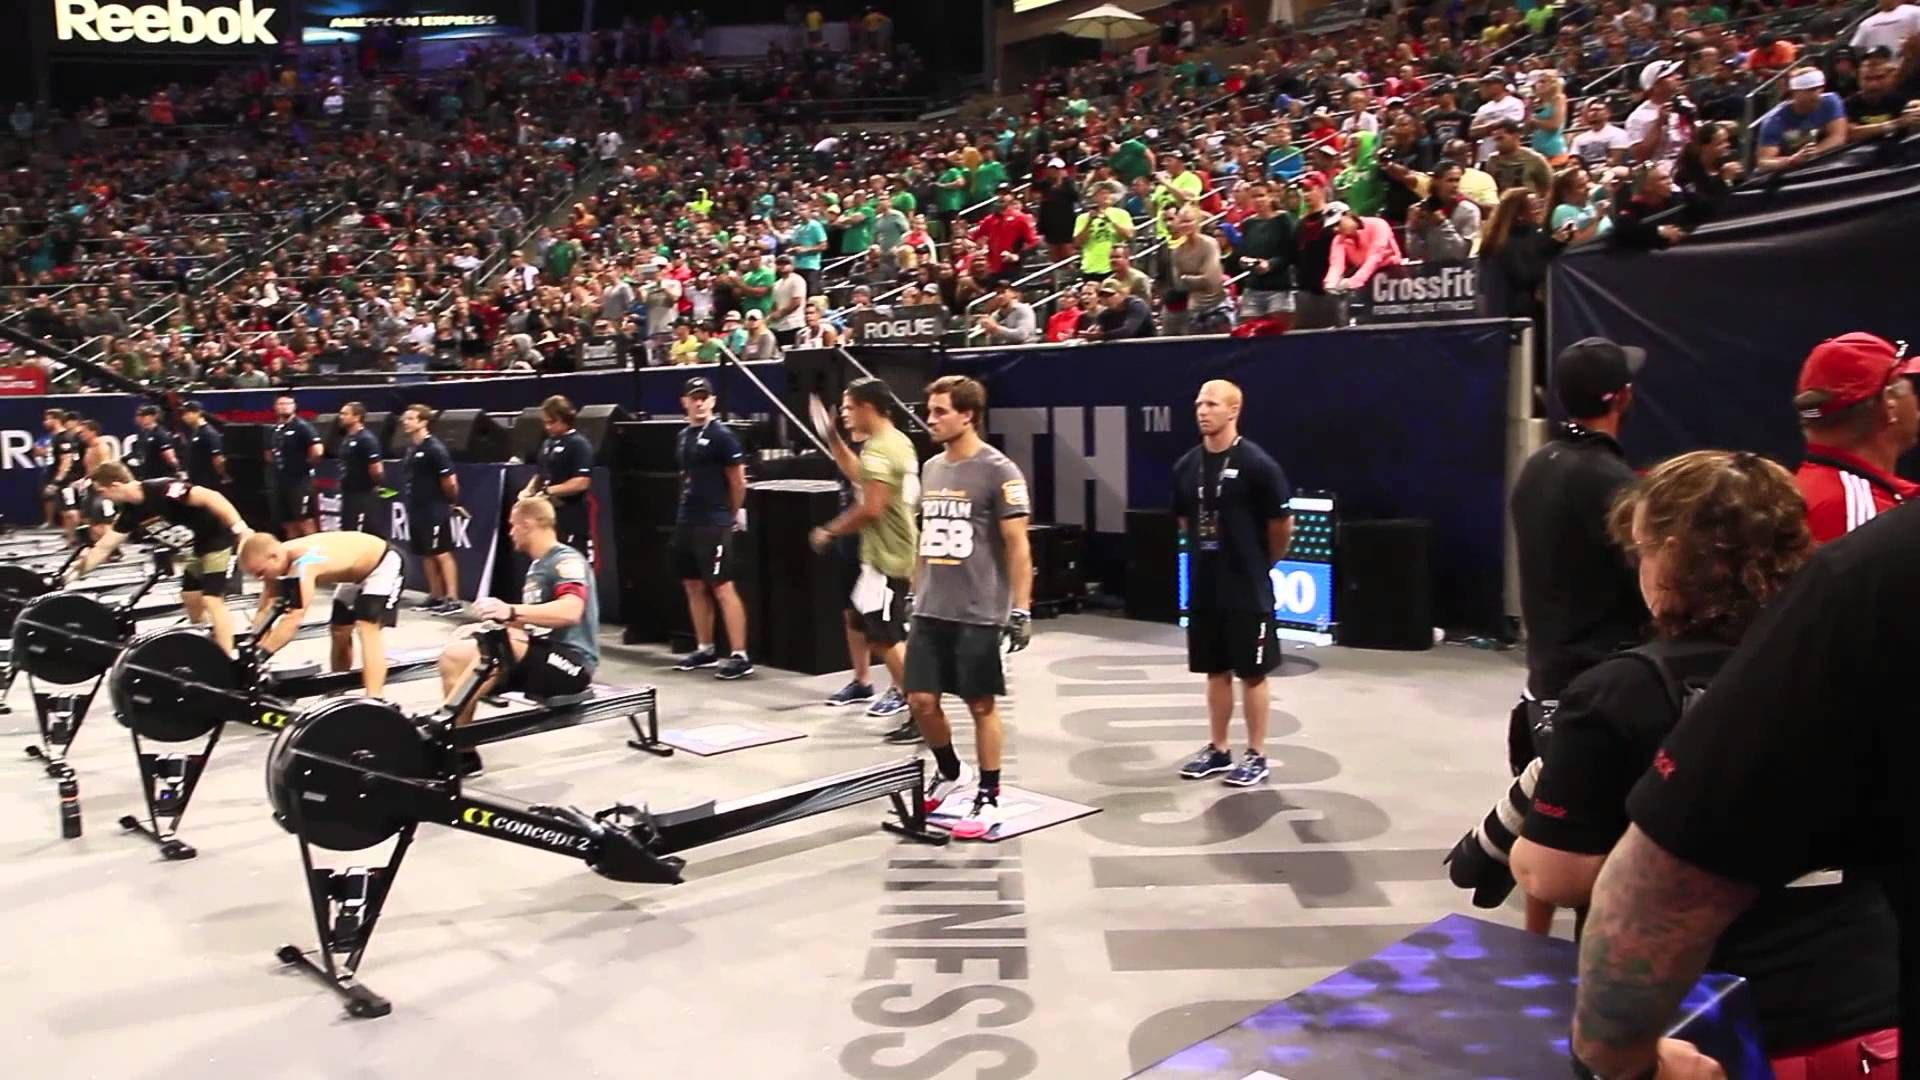 Reebok Crossfit Games 2013 Champions Jason Khalipa And Garret